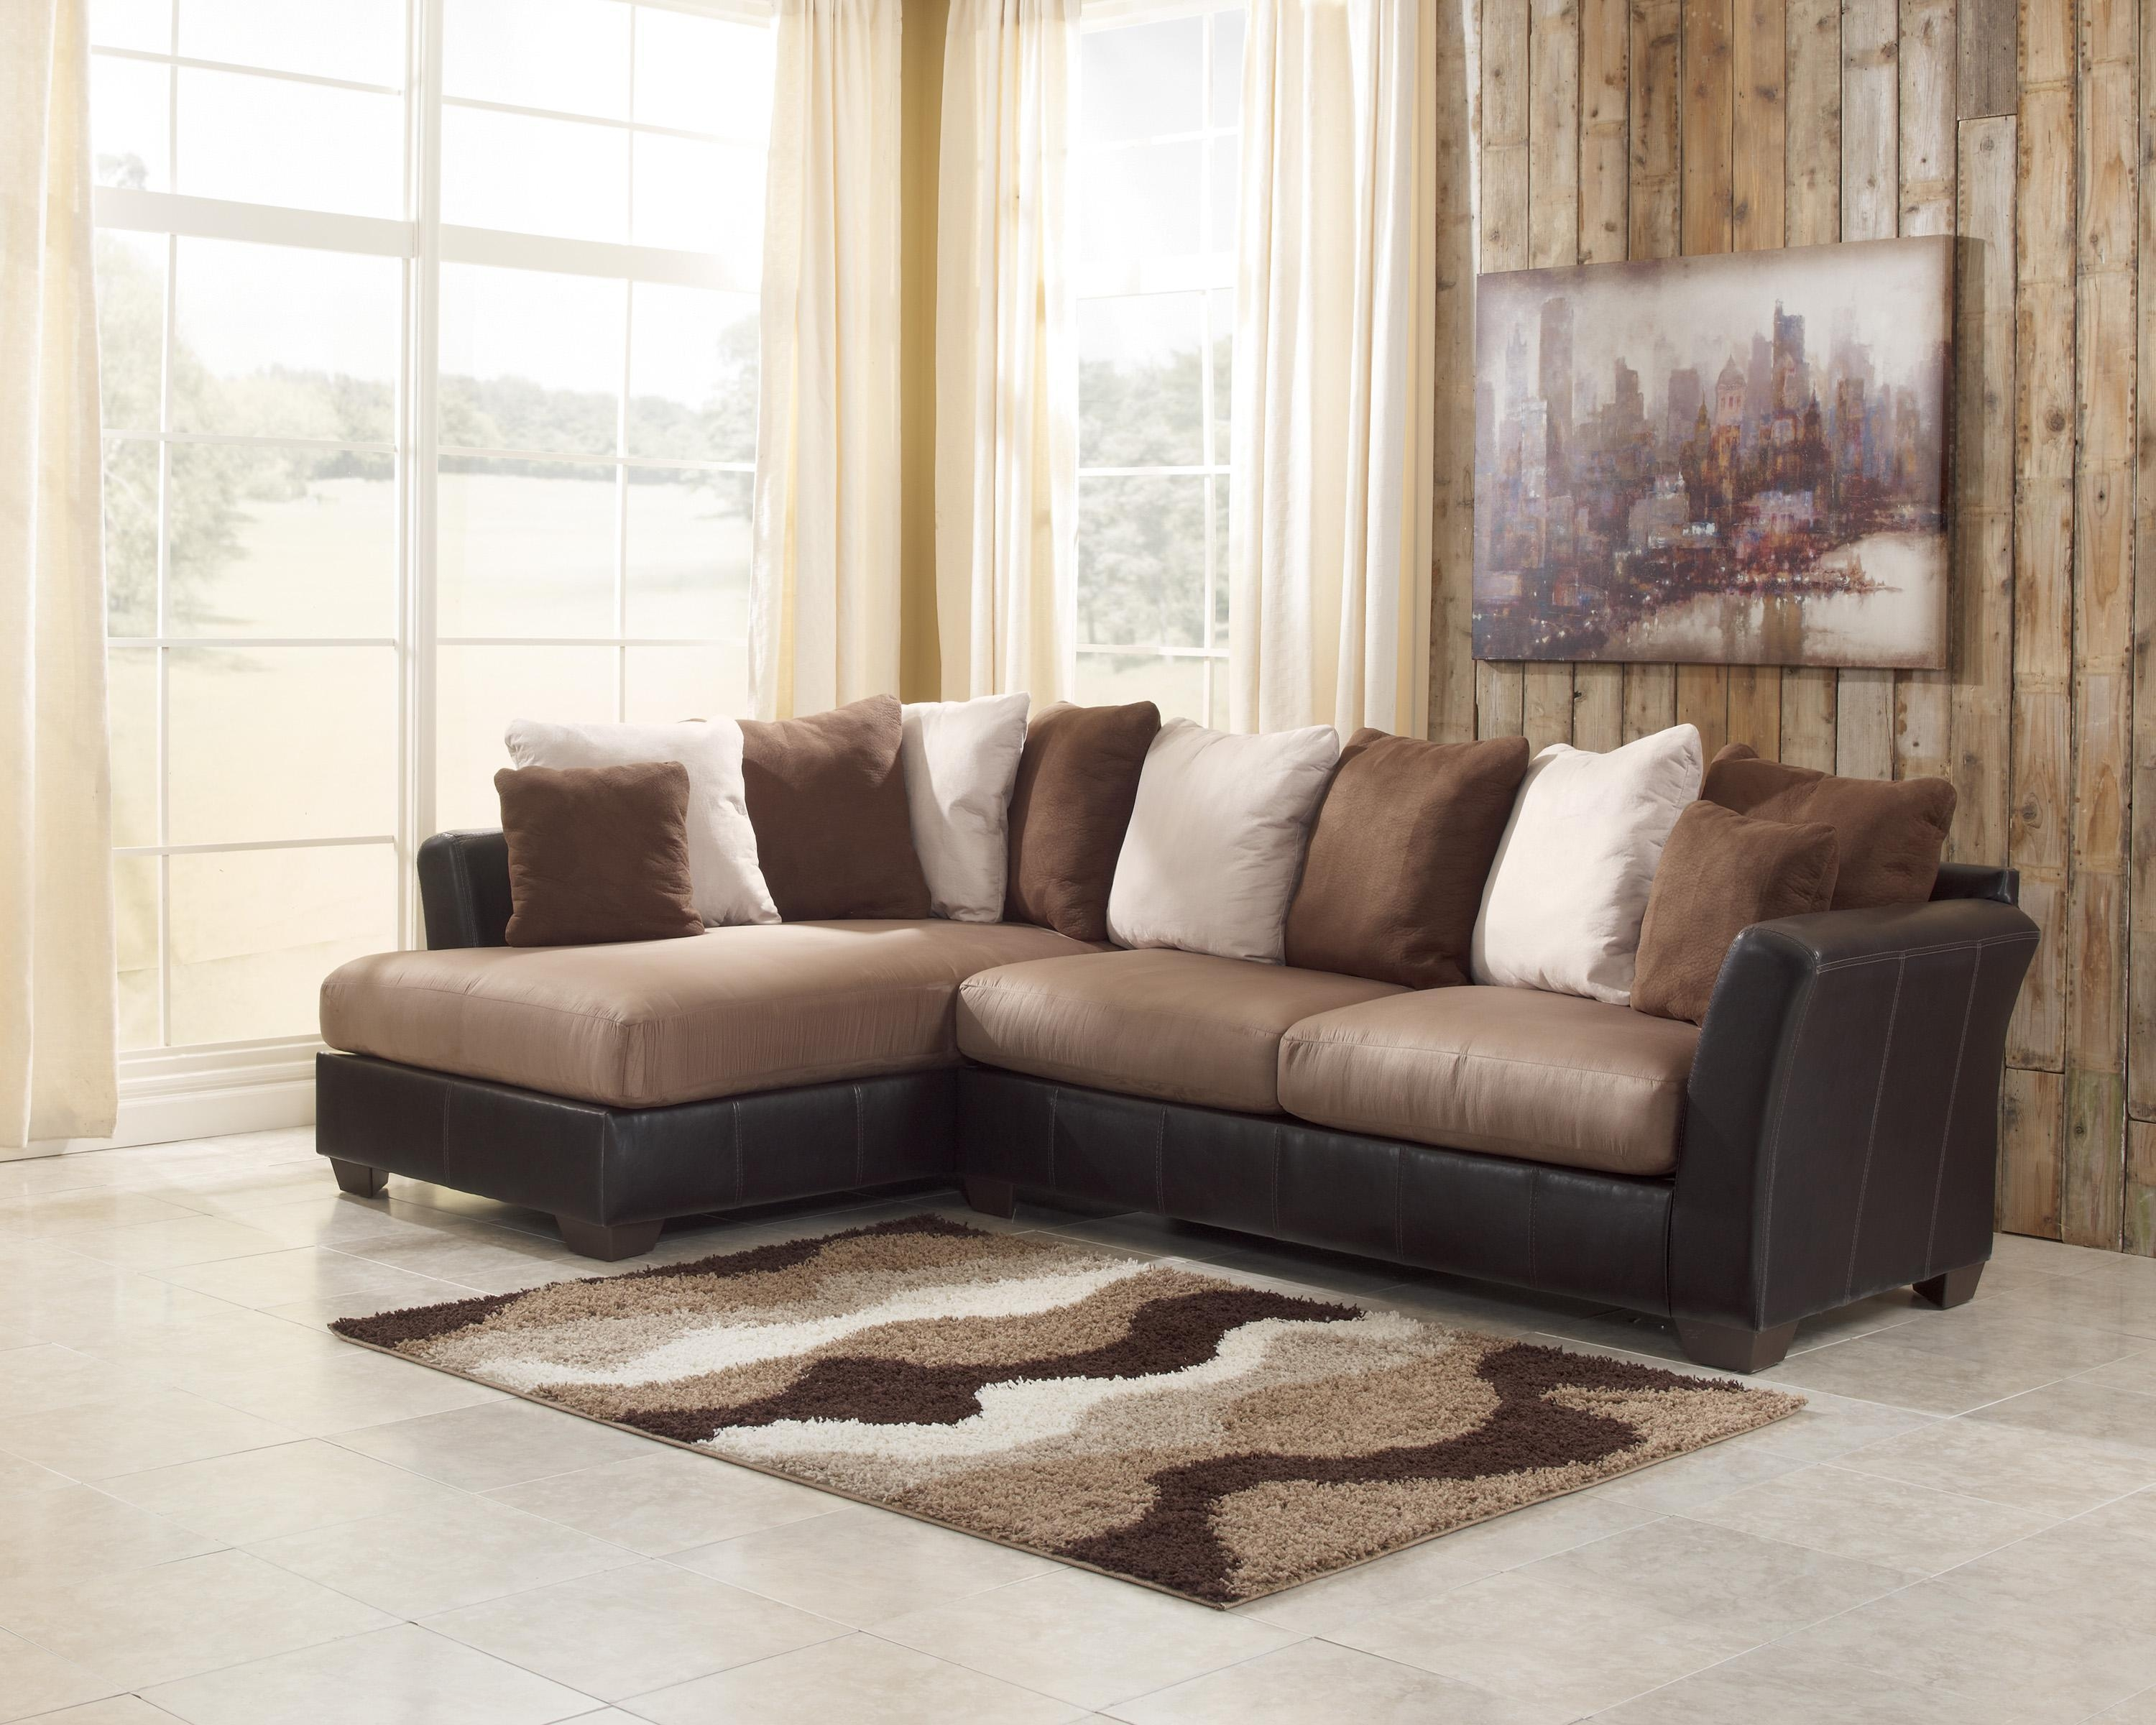 2 Piece Sectional Sofa Leather | Tehranmix Decoration Pertaining To 2 Piece Sofas (View 8 of 20)